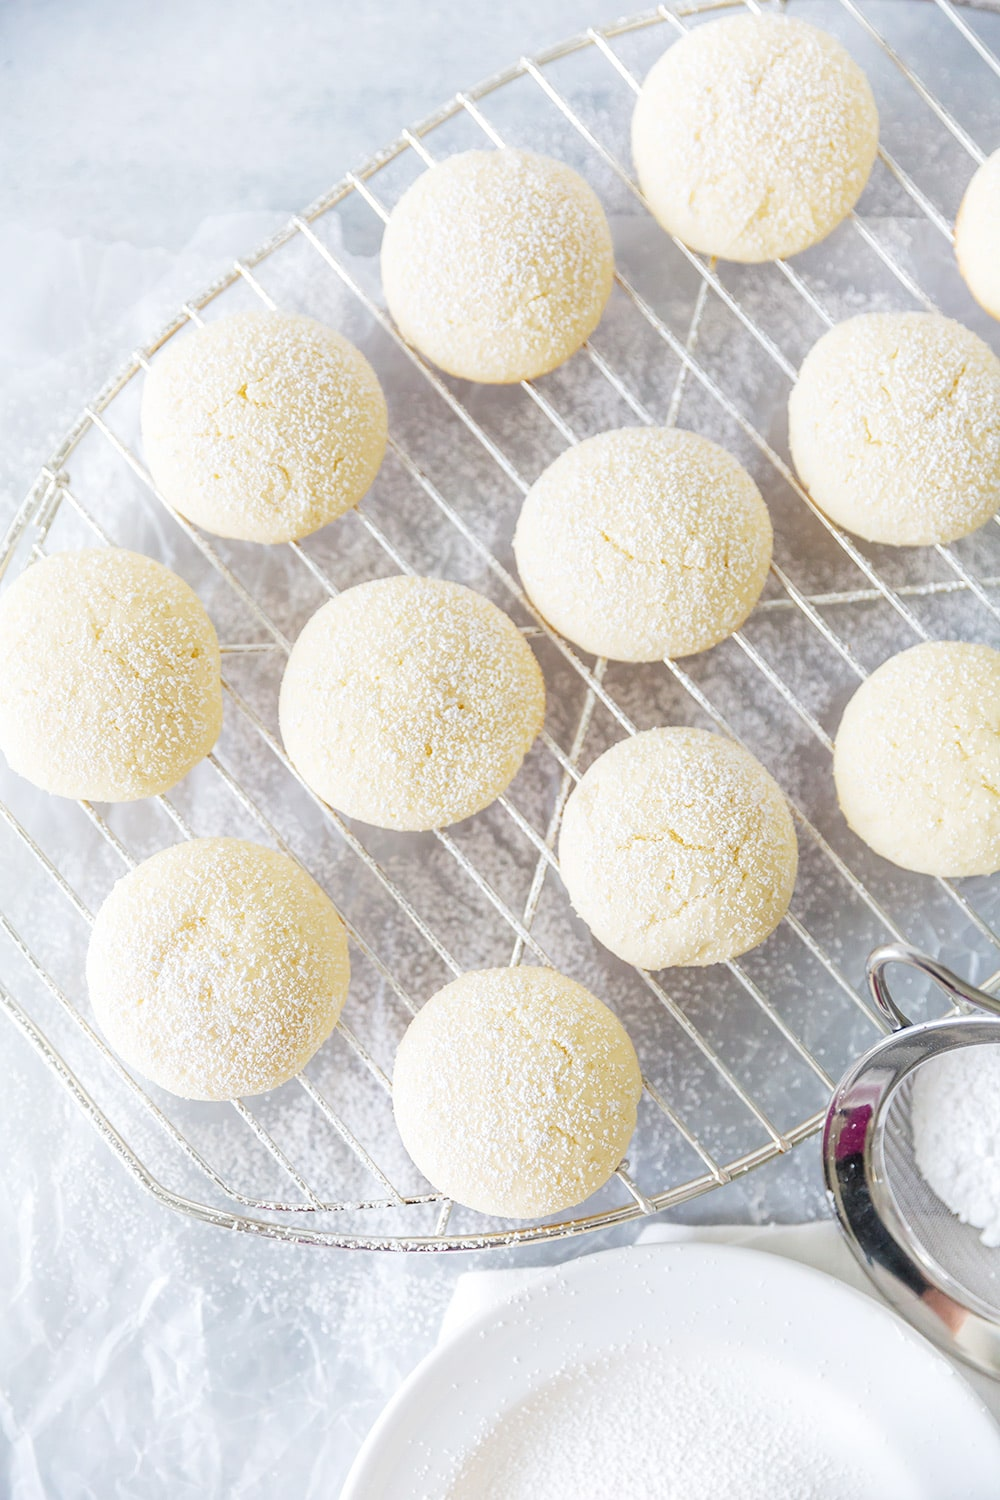 Pillow Soft Cream Cheese Cookies